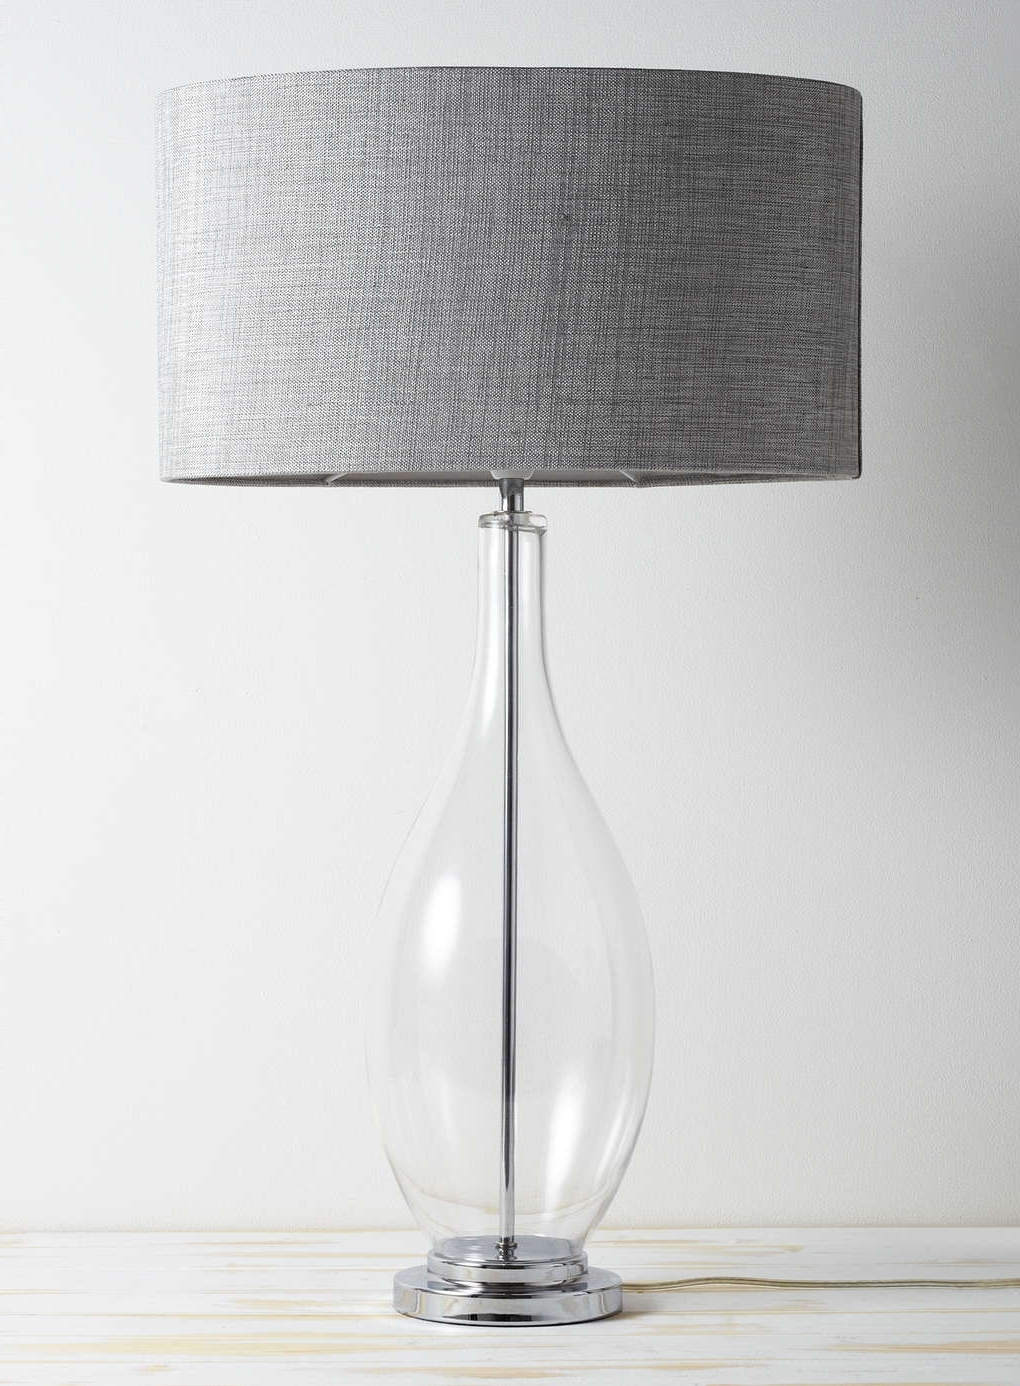 Favorite Fabulous Tall Glass Table Lamp 6 Astonishing Lamps U Design Pretty Intended For Tall Table Lamps For Living Room (View 5 of 20)